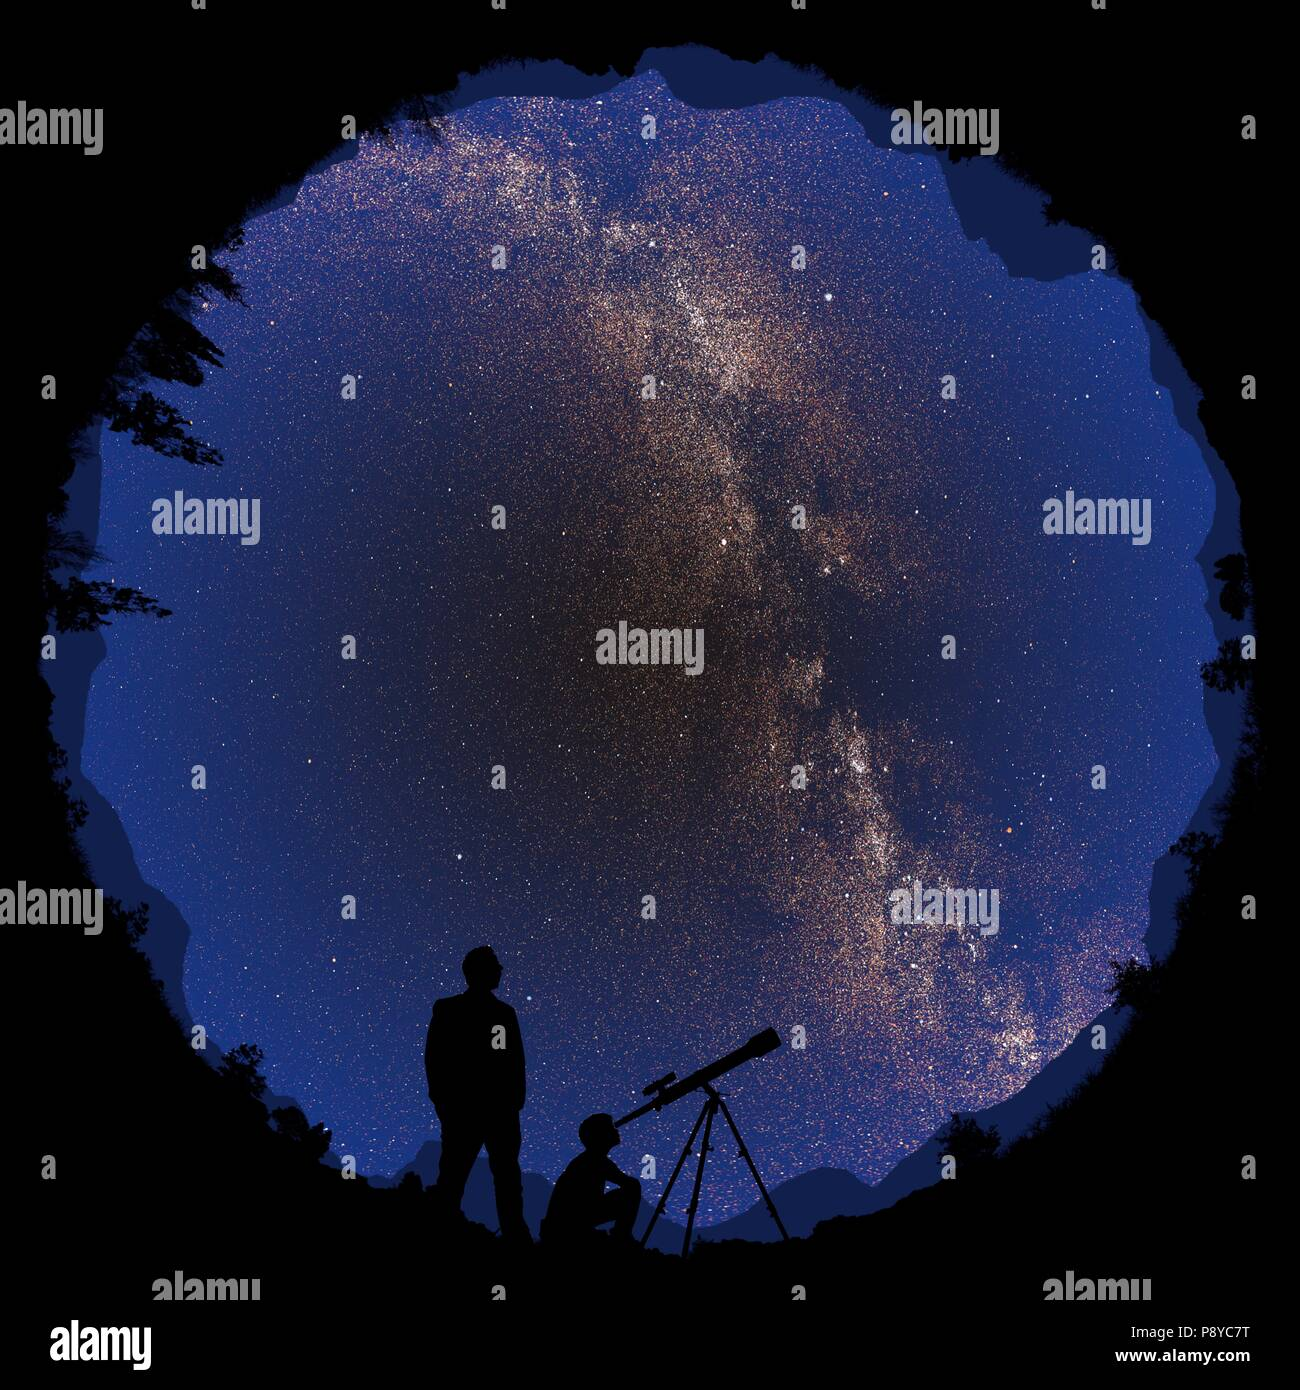 Illustration of a 360-degree view of a pair of astronomers observing the night sky. - Stock Image